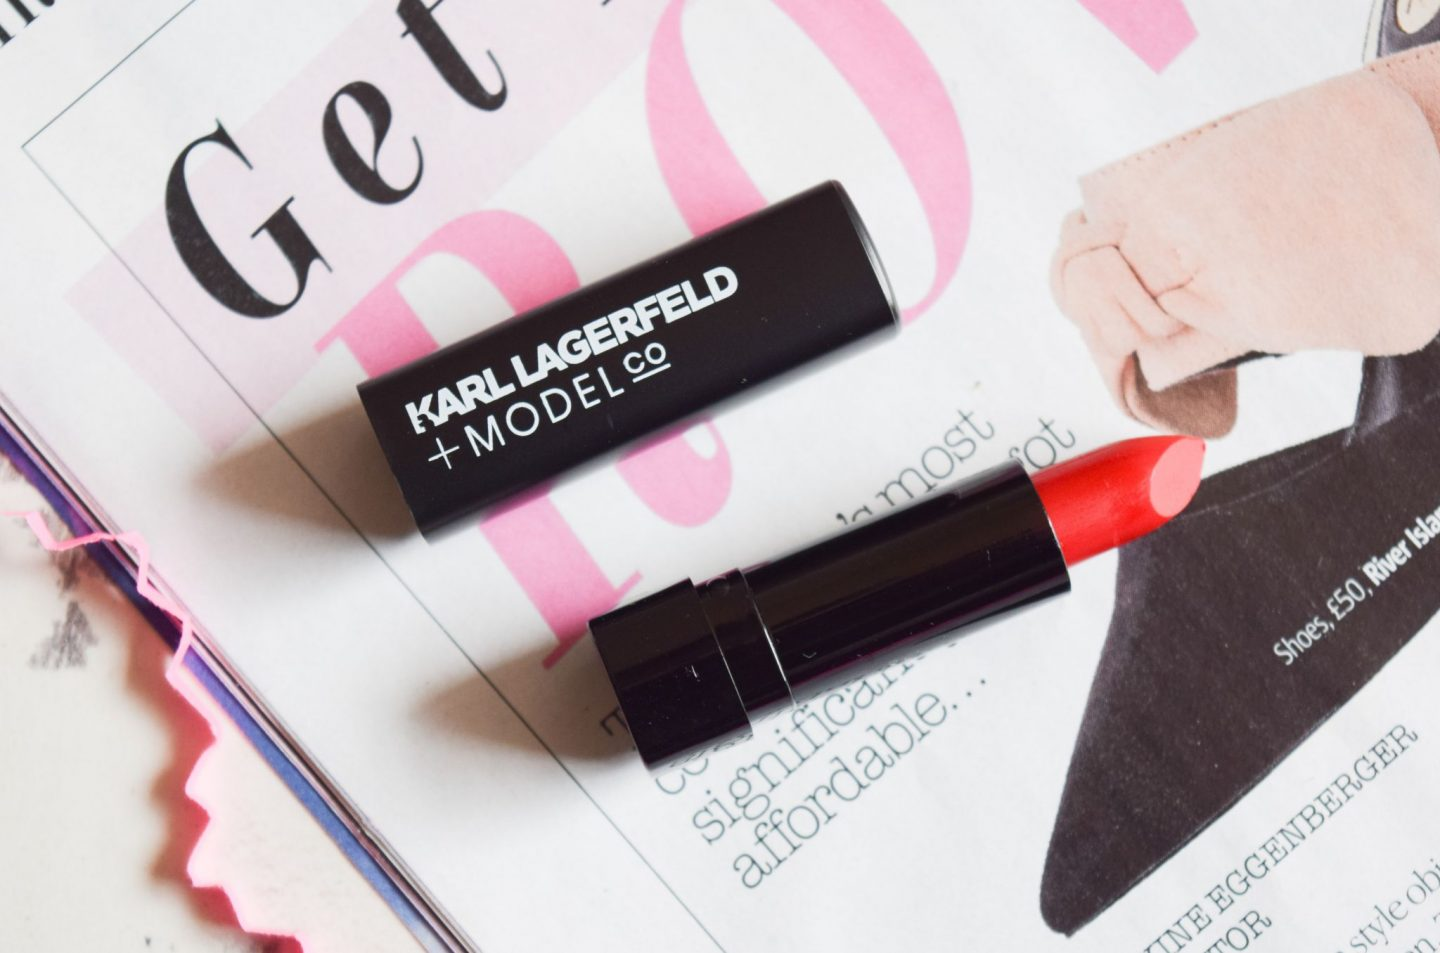 karl lagerfeld modelco lip couture lipstick in red